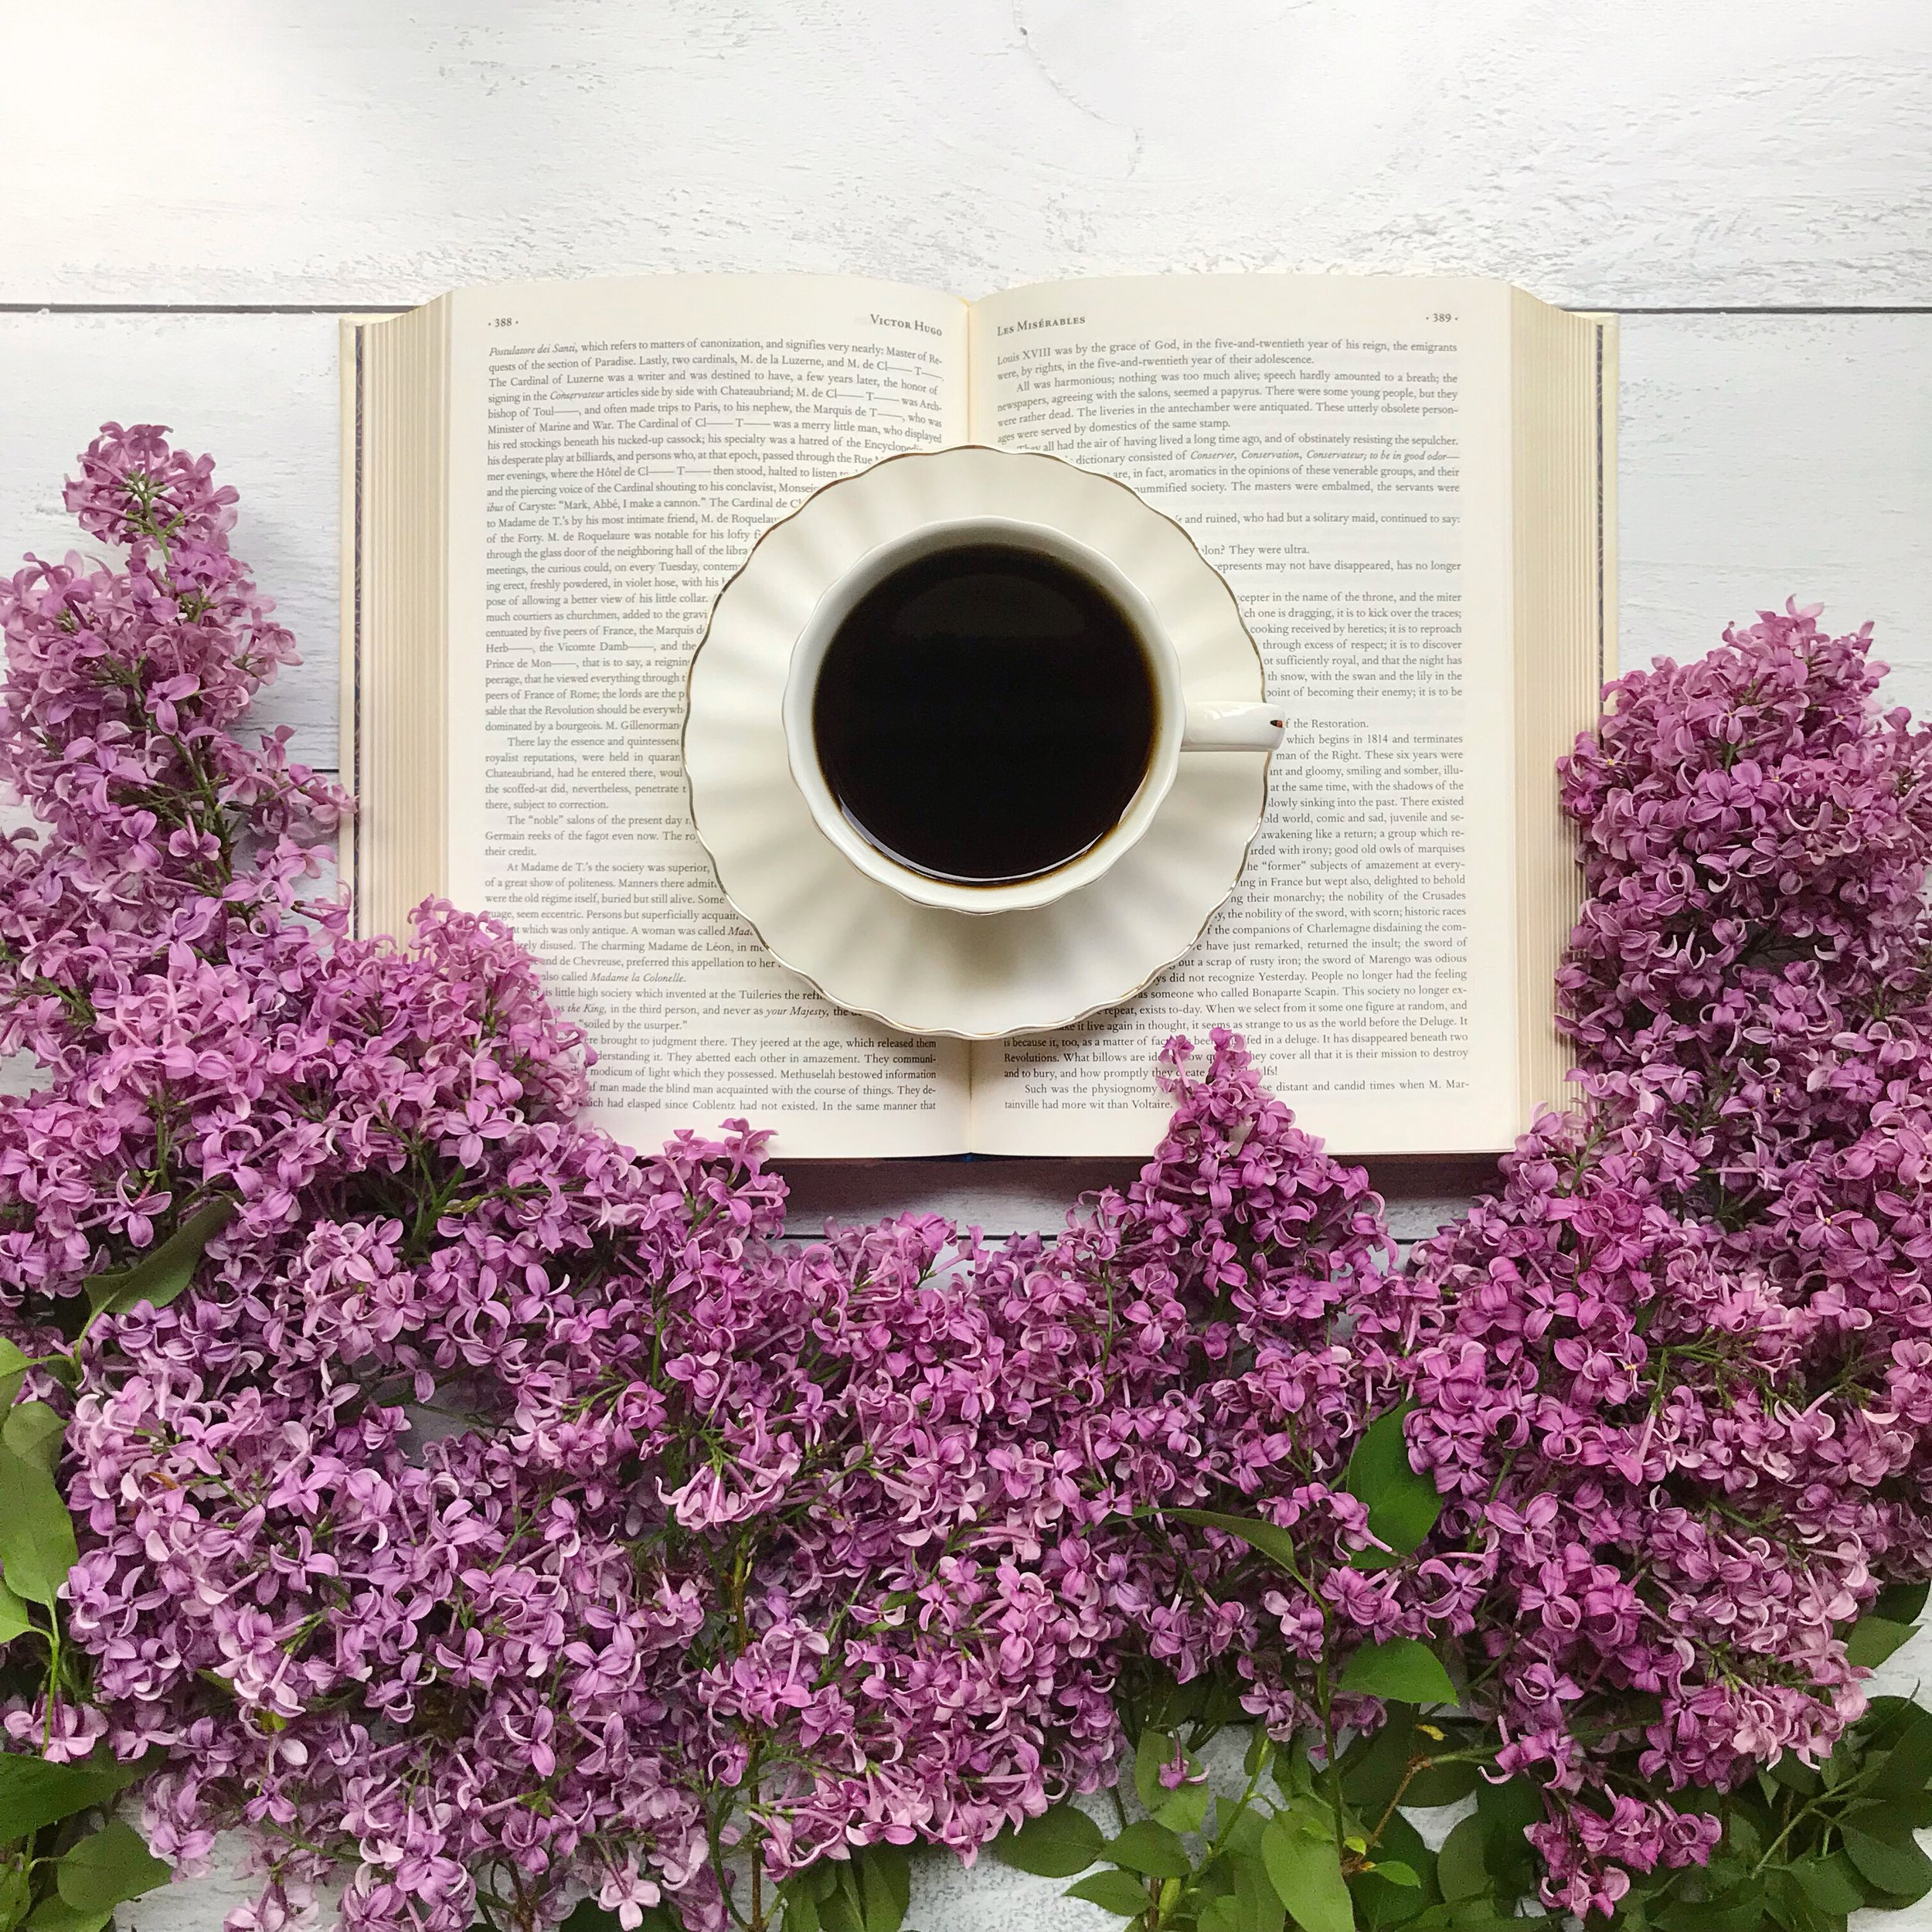 Books and lilacs.JPG